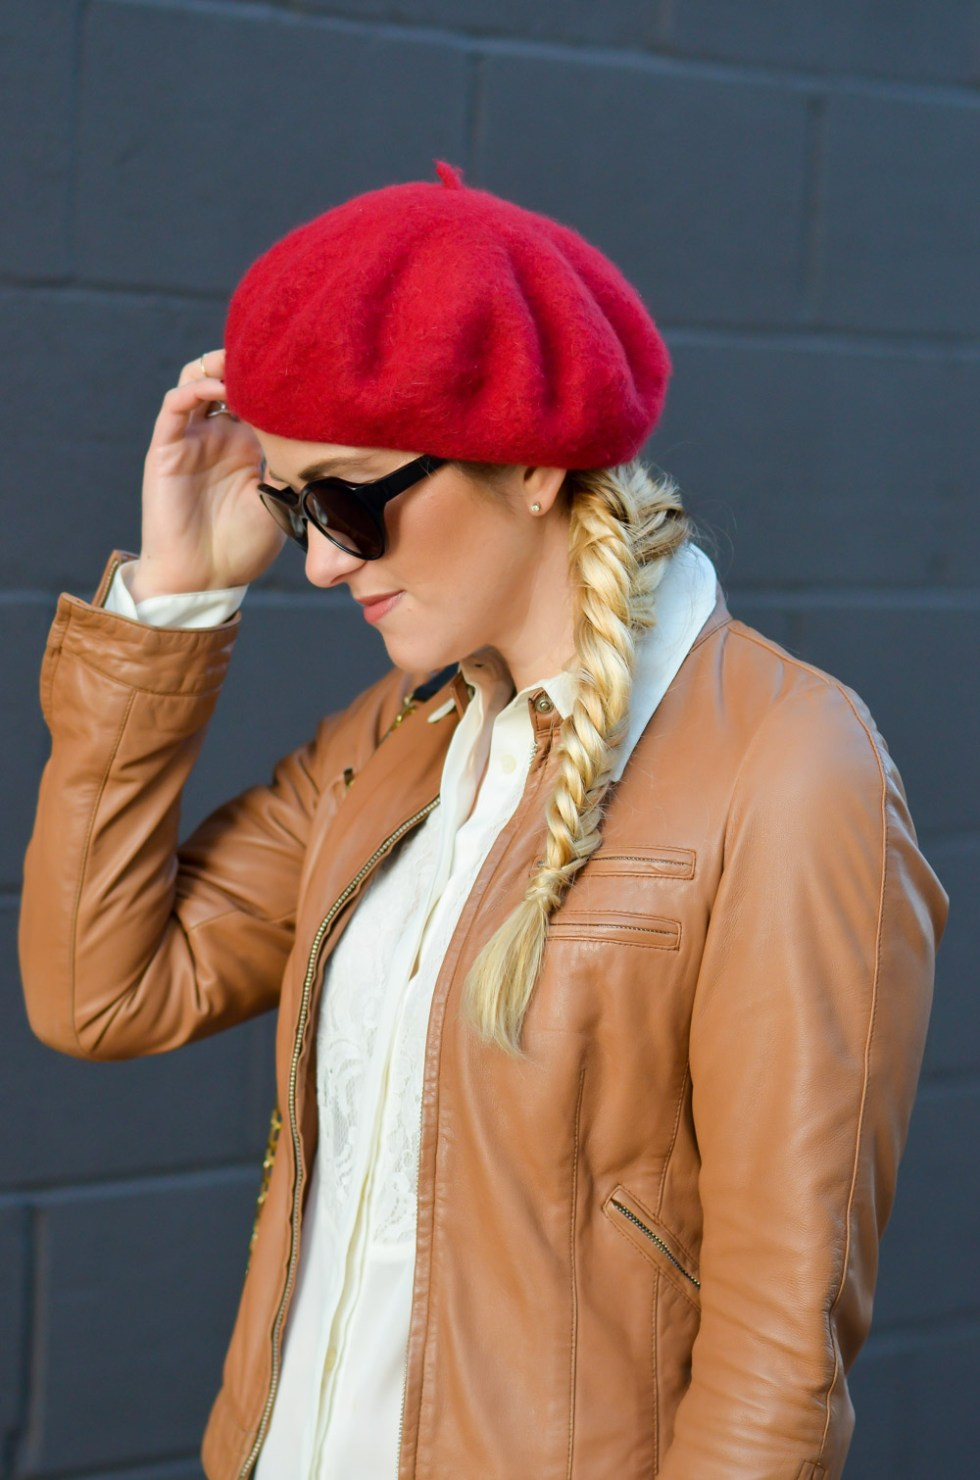 Women's Red Beret Outfit w. Fishtail Braid